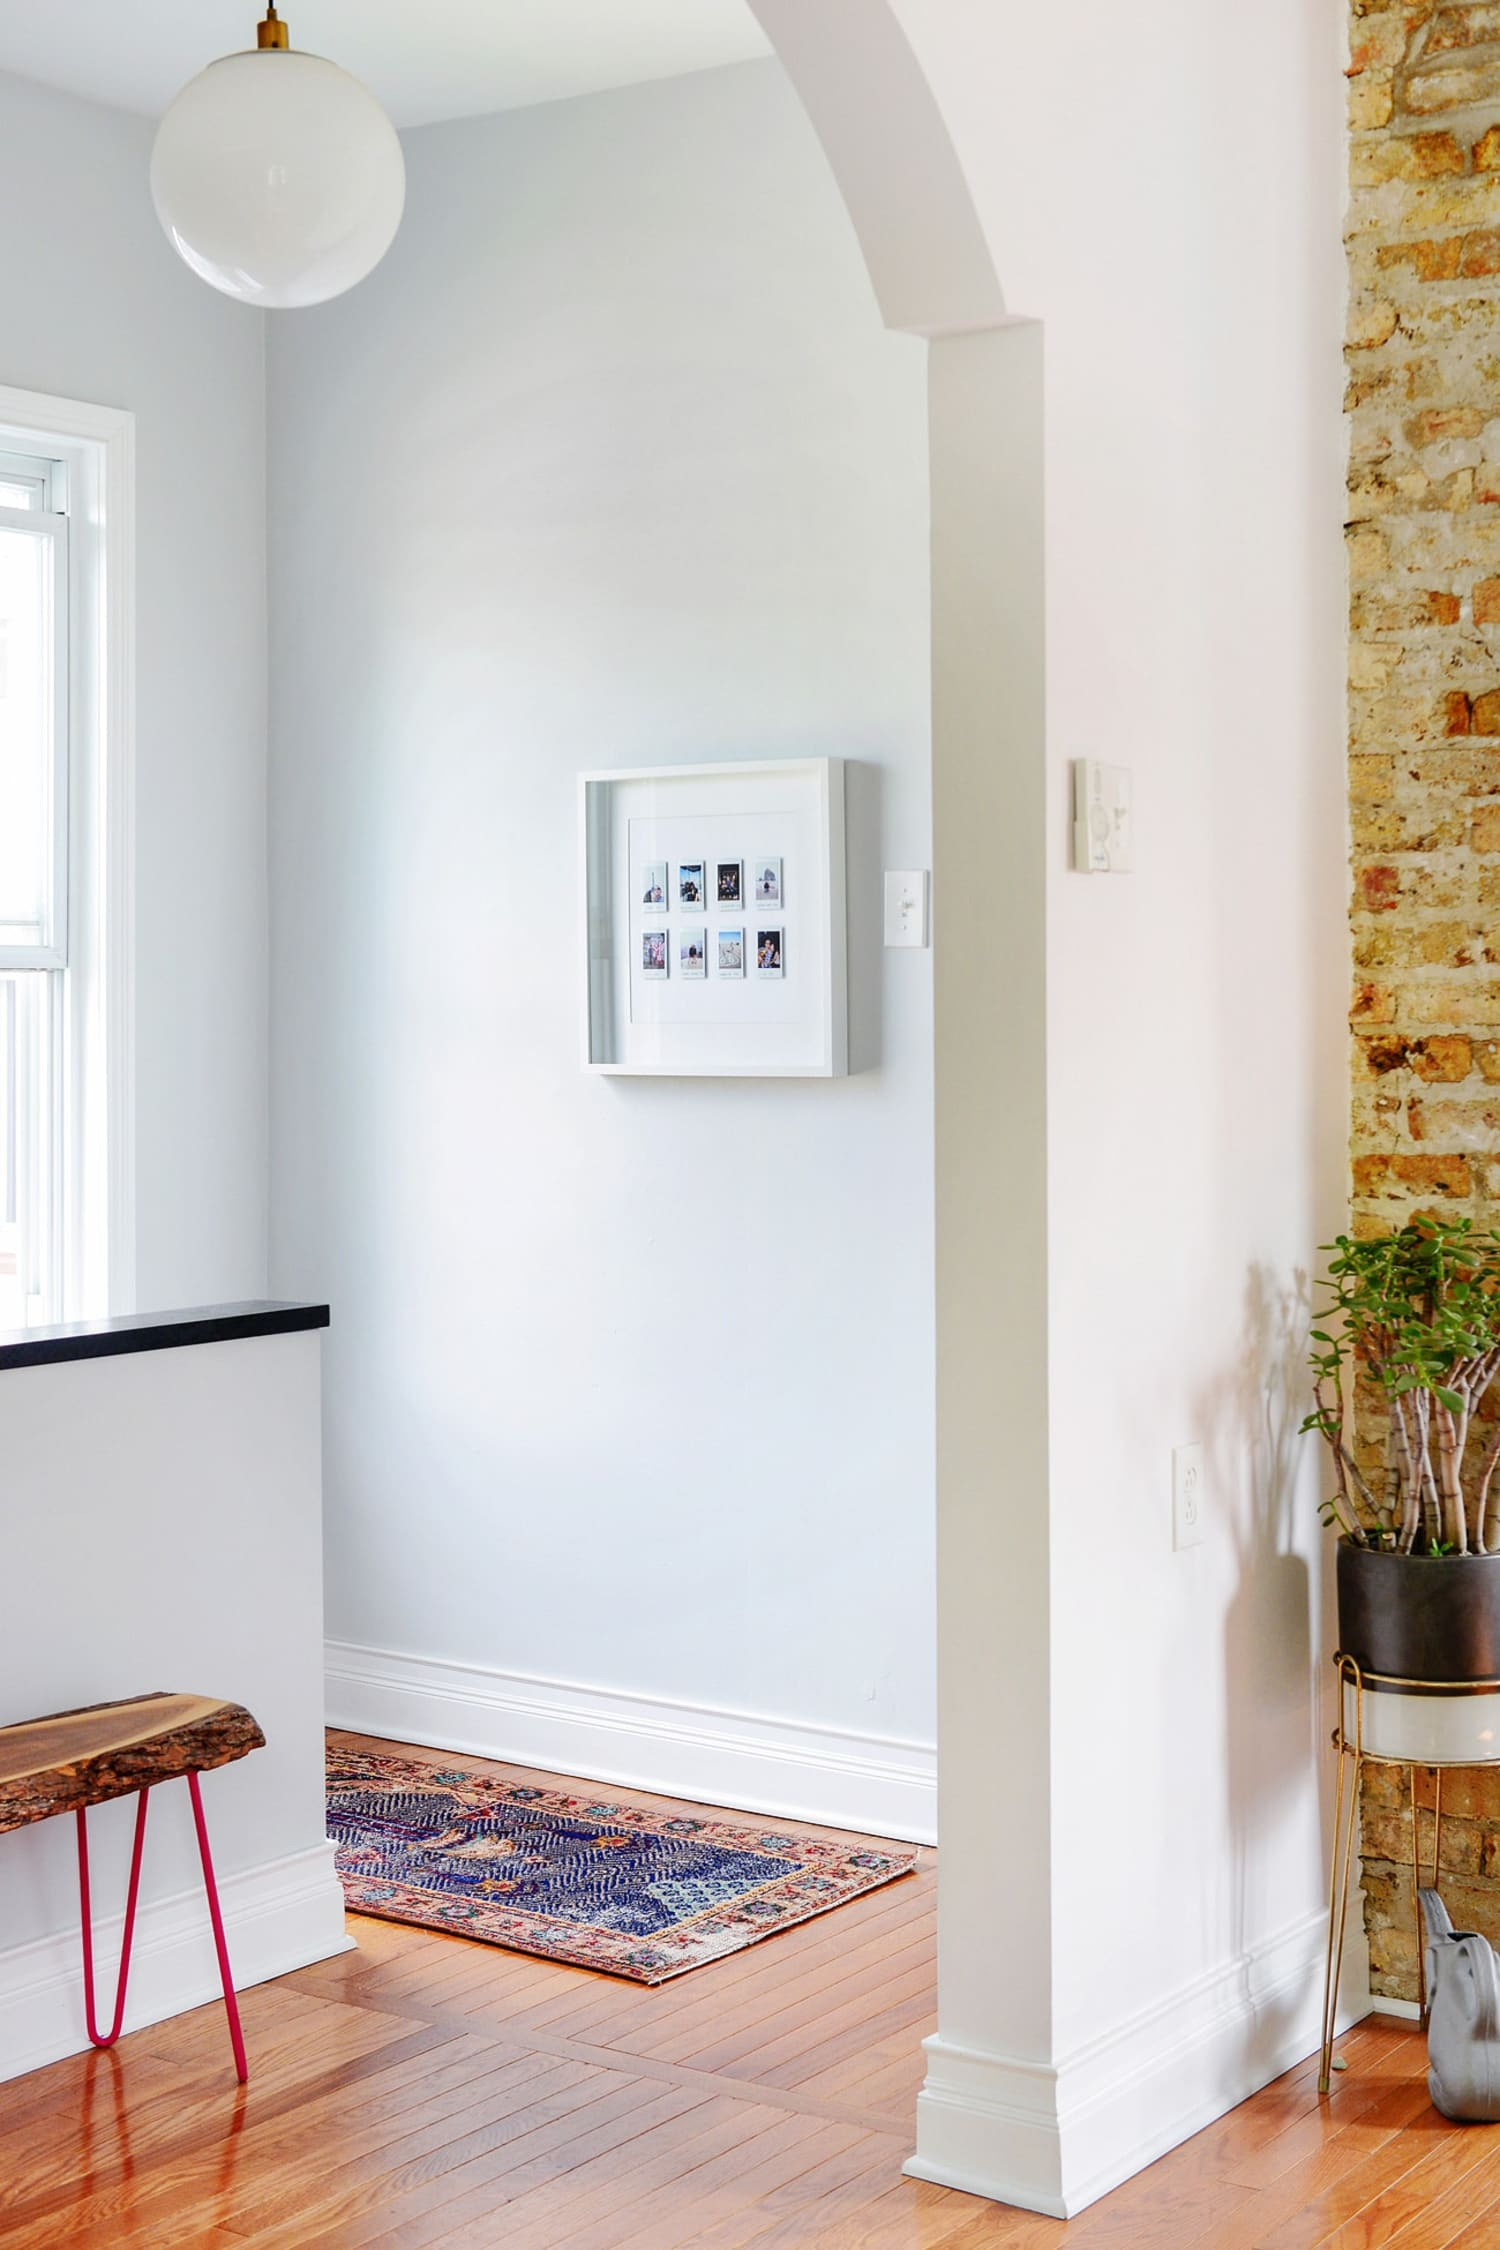 7 Photo Display Ideas That Are Both Fun and Stylish